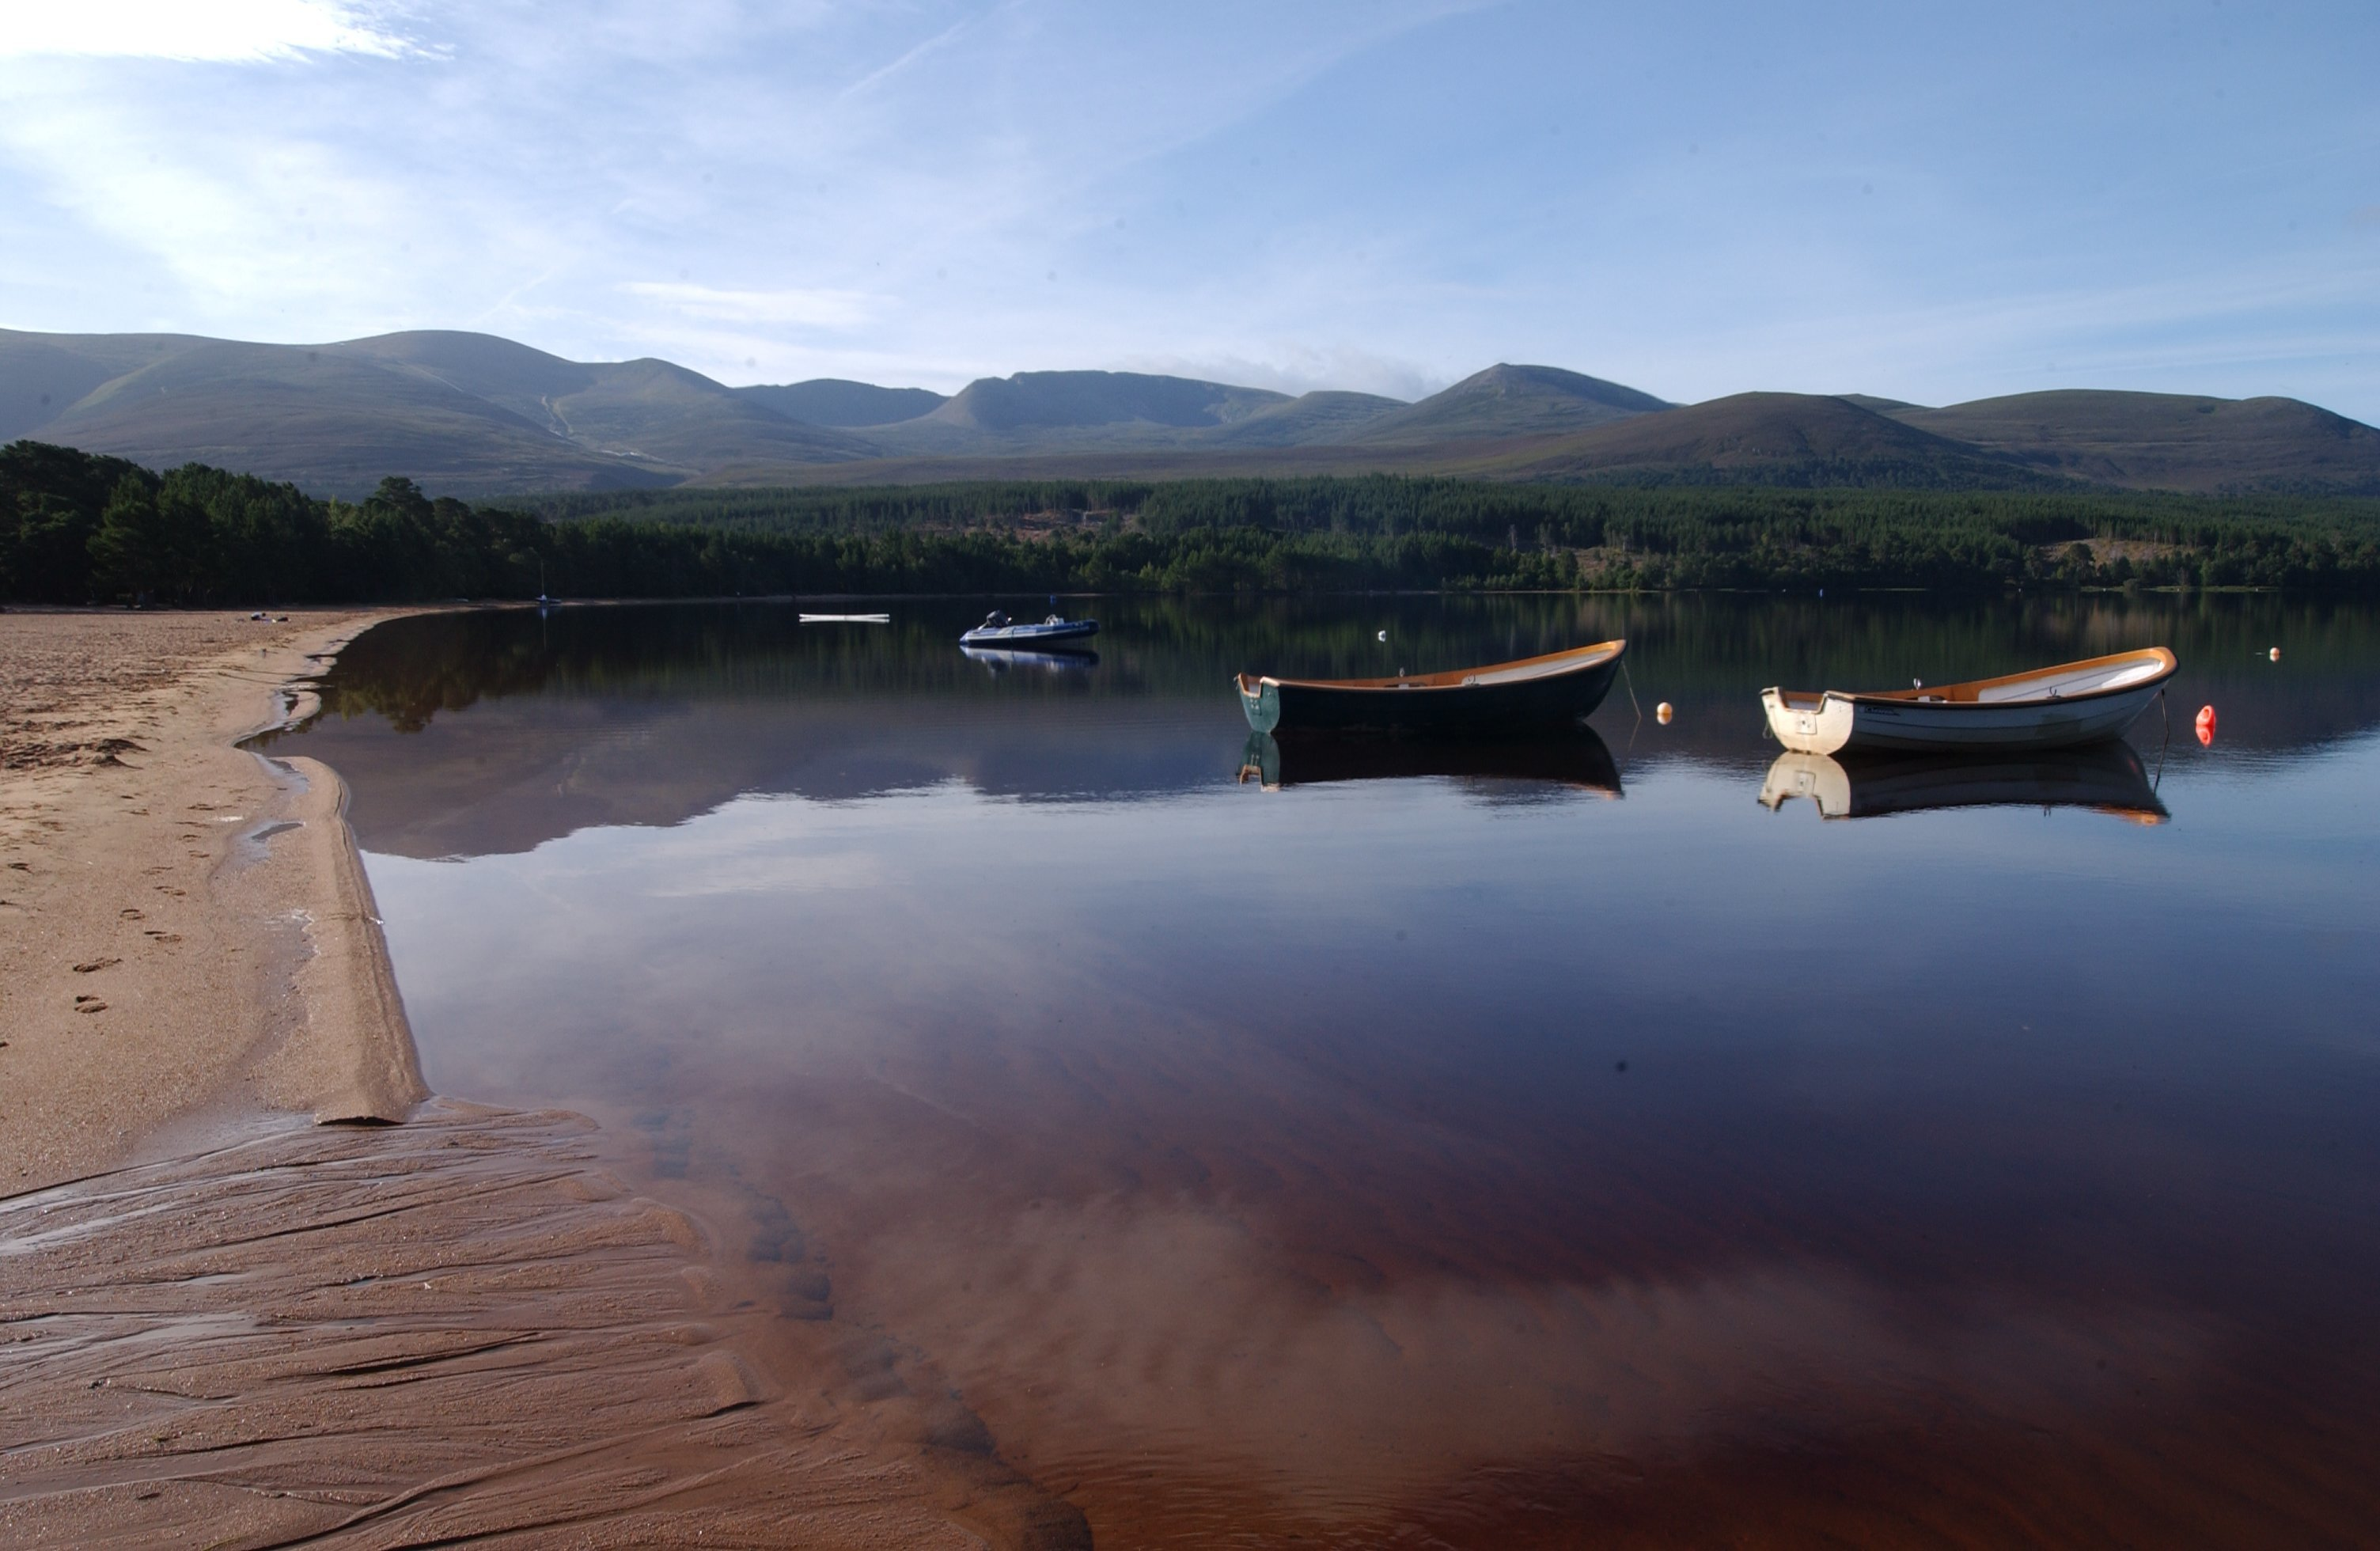 Loch Morlich beach has won the Rural Beach Award five years on the trot